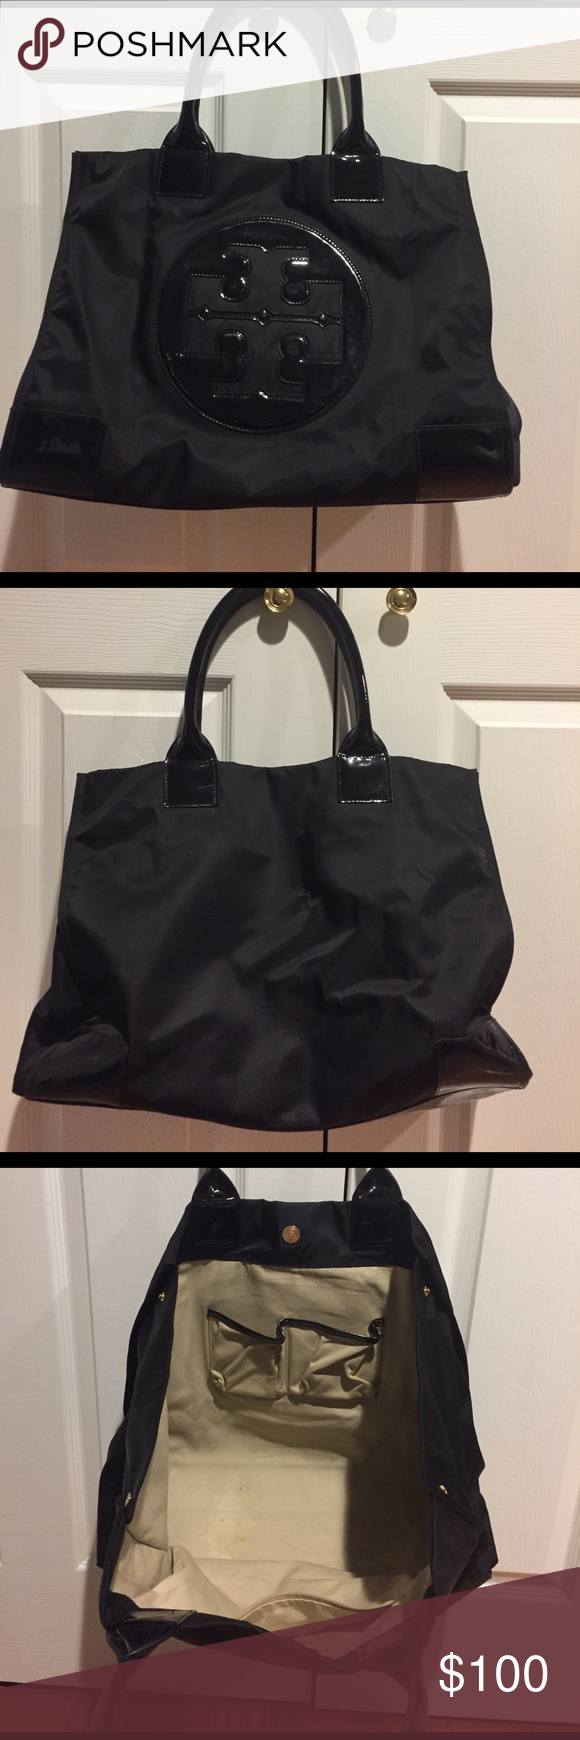 Tory Burch purse Black big Tory burch tote, great condition, a few small stains on the inside Tory Burch Bags Totes